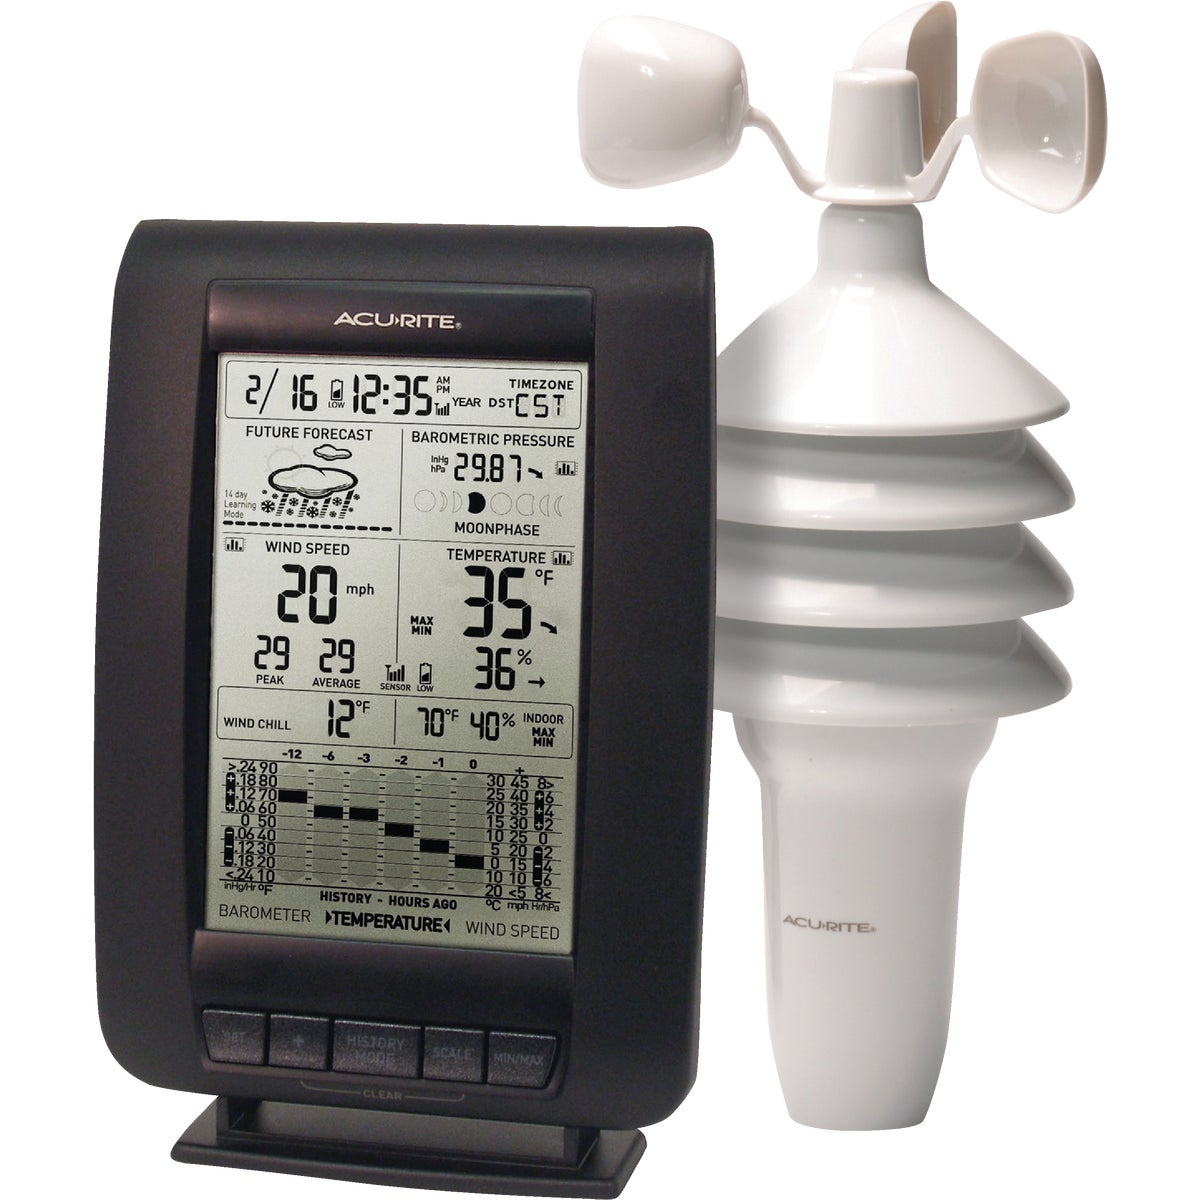 WIND WEATHER CENTER - 00634A2 by Chaney Instrument Co